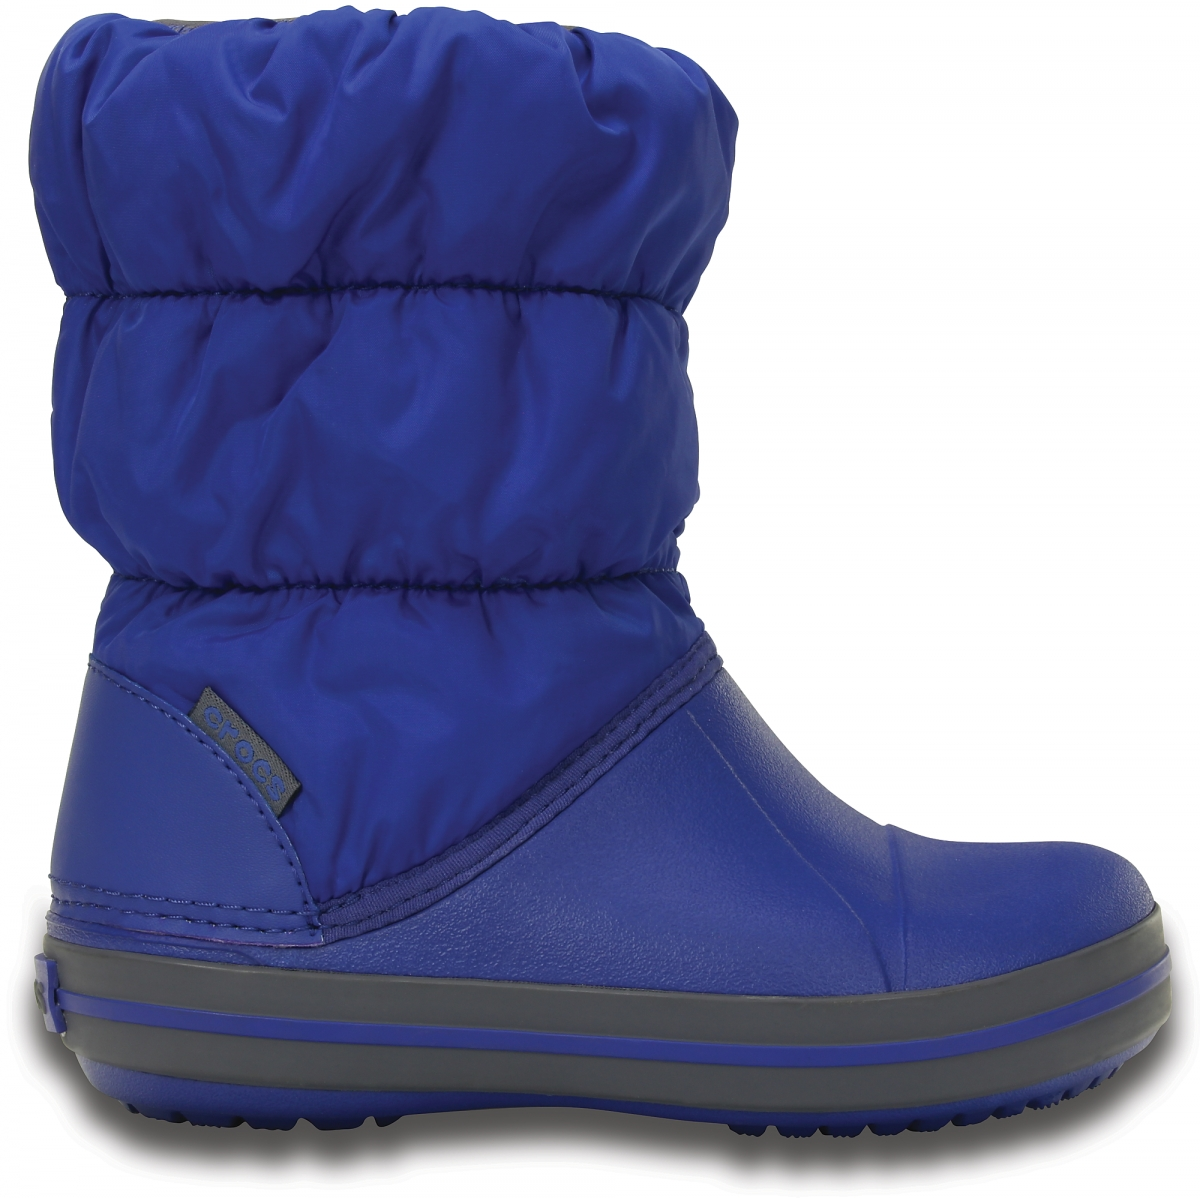 Crocs Winter Puff Boot Kids - Cerulean Blue/Light Grey, C9 (25-26)